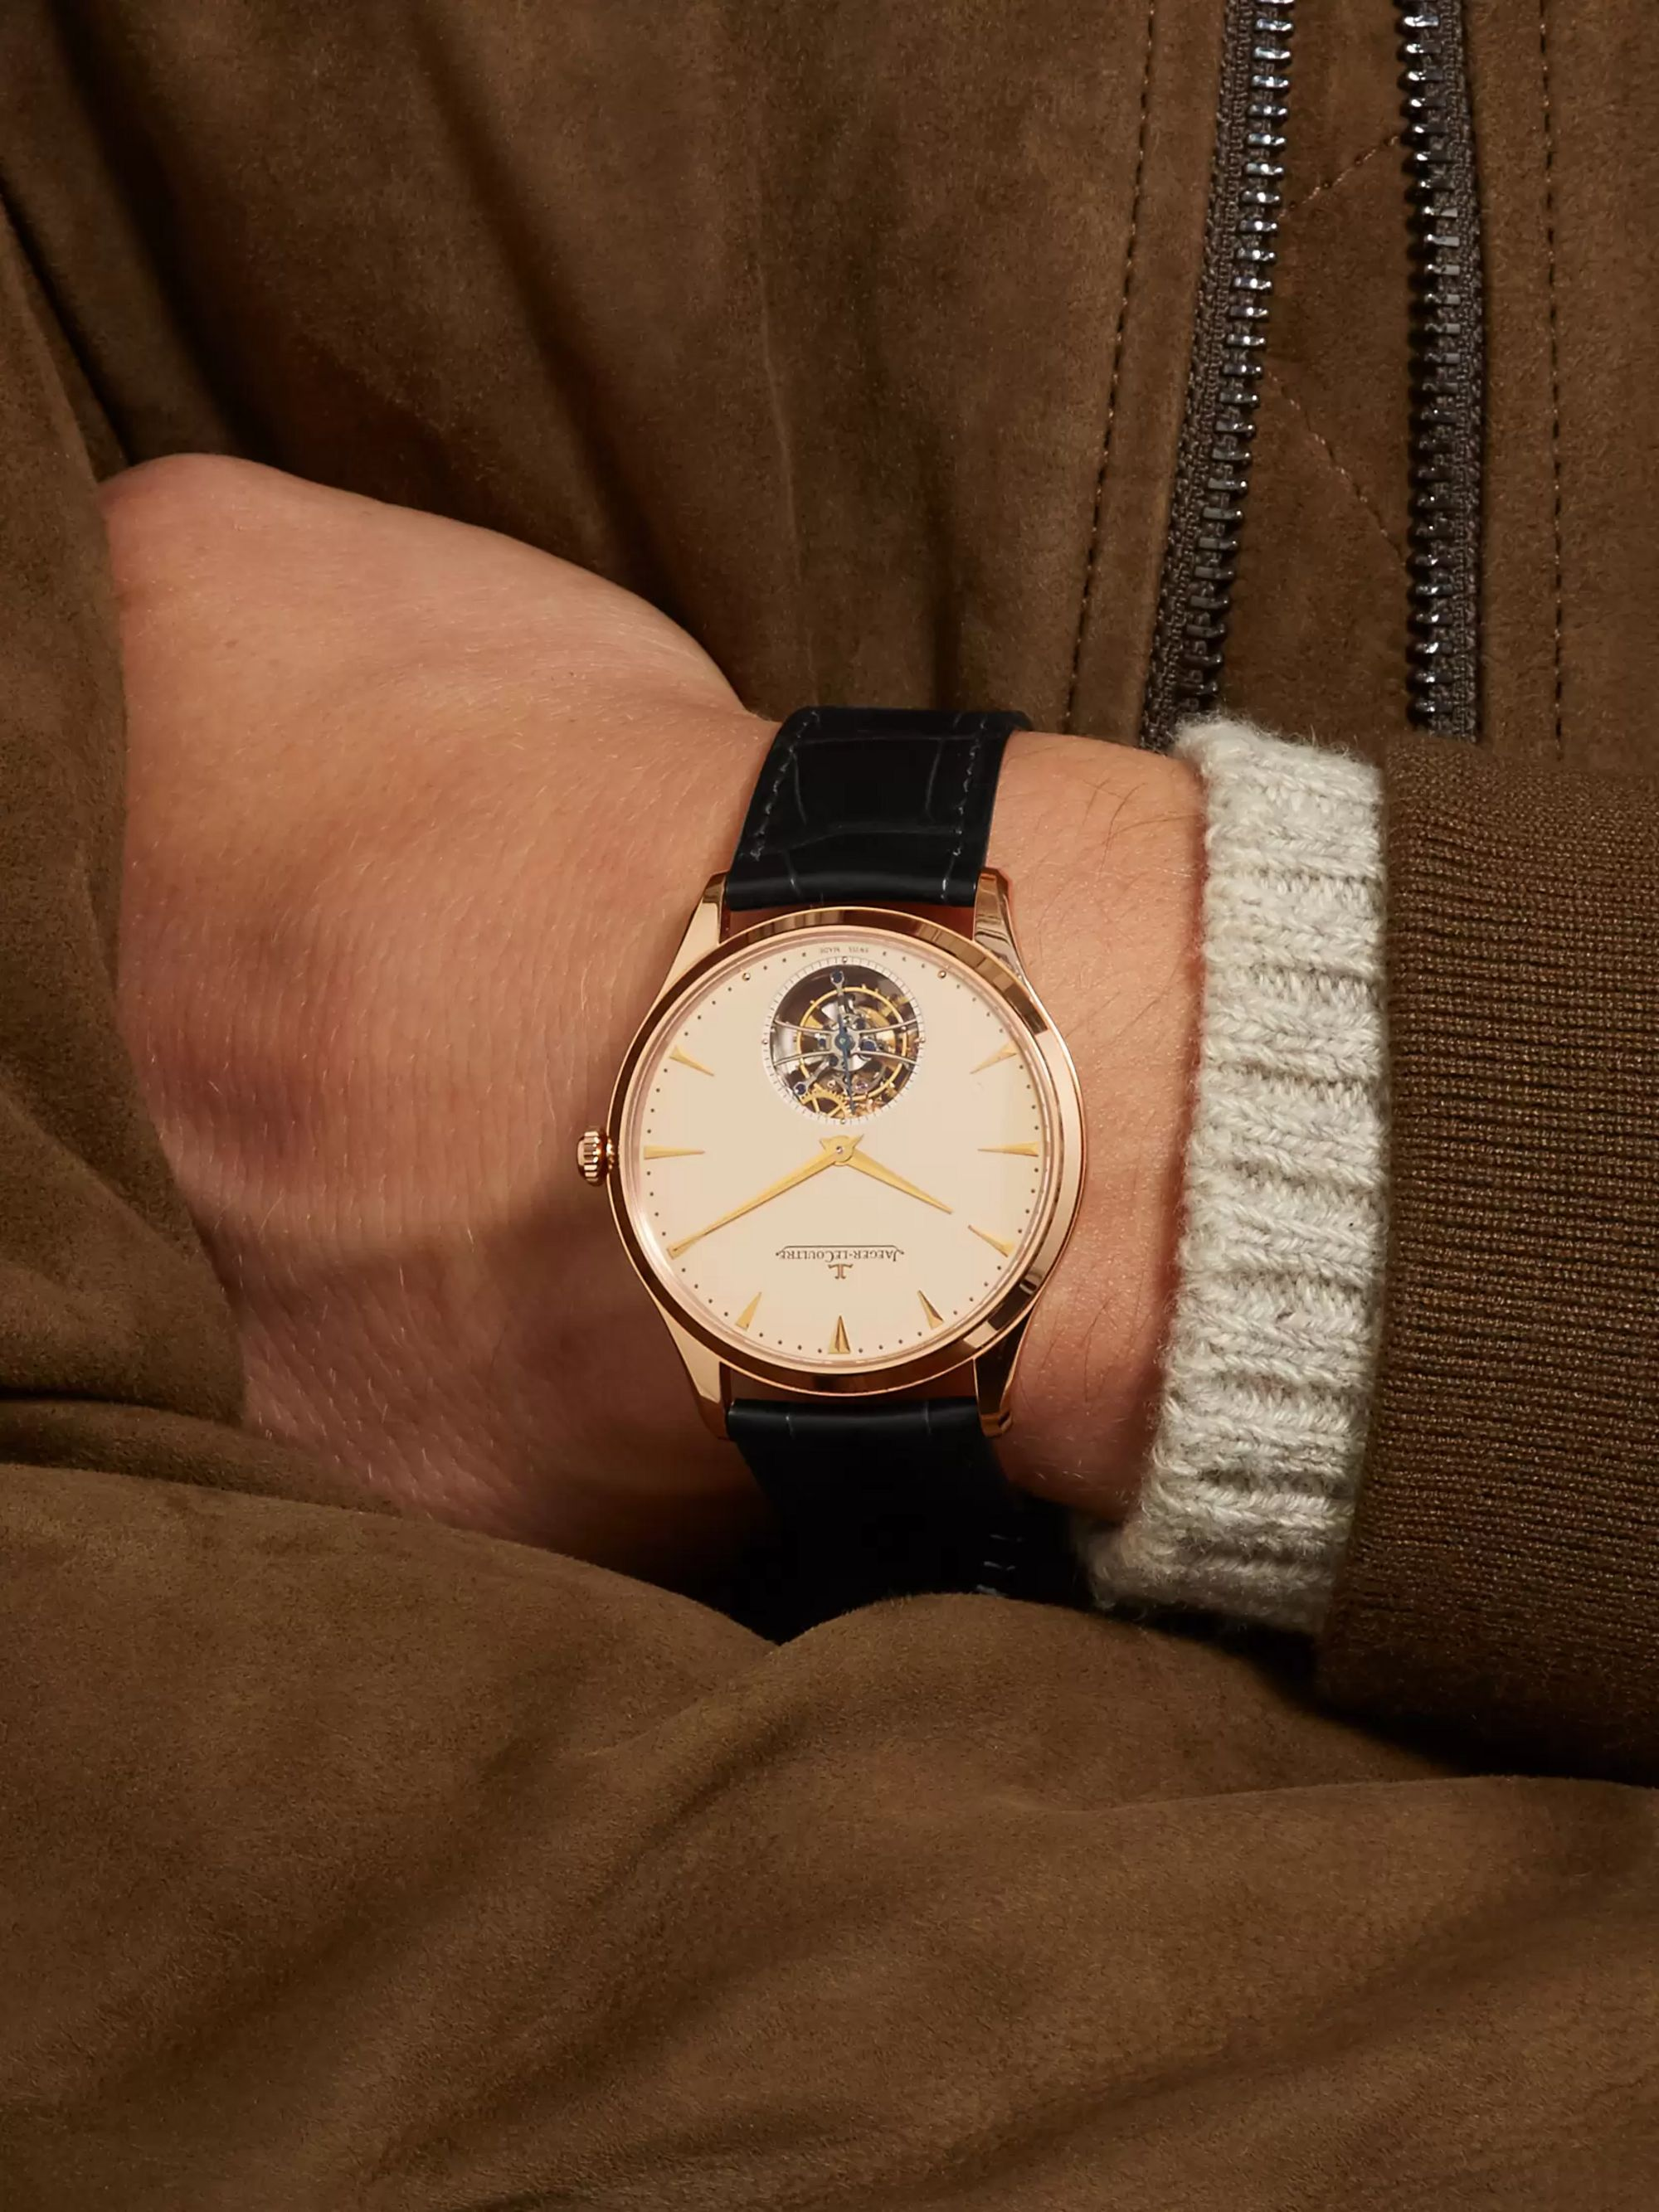 Jaeger-LeCoultre Master Ultra Thin Tourbillon 40mm 18-Karat Rose Gold and Alligator Watch